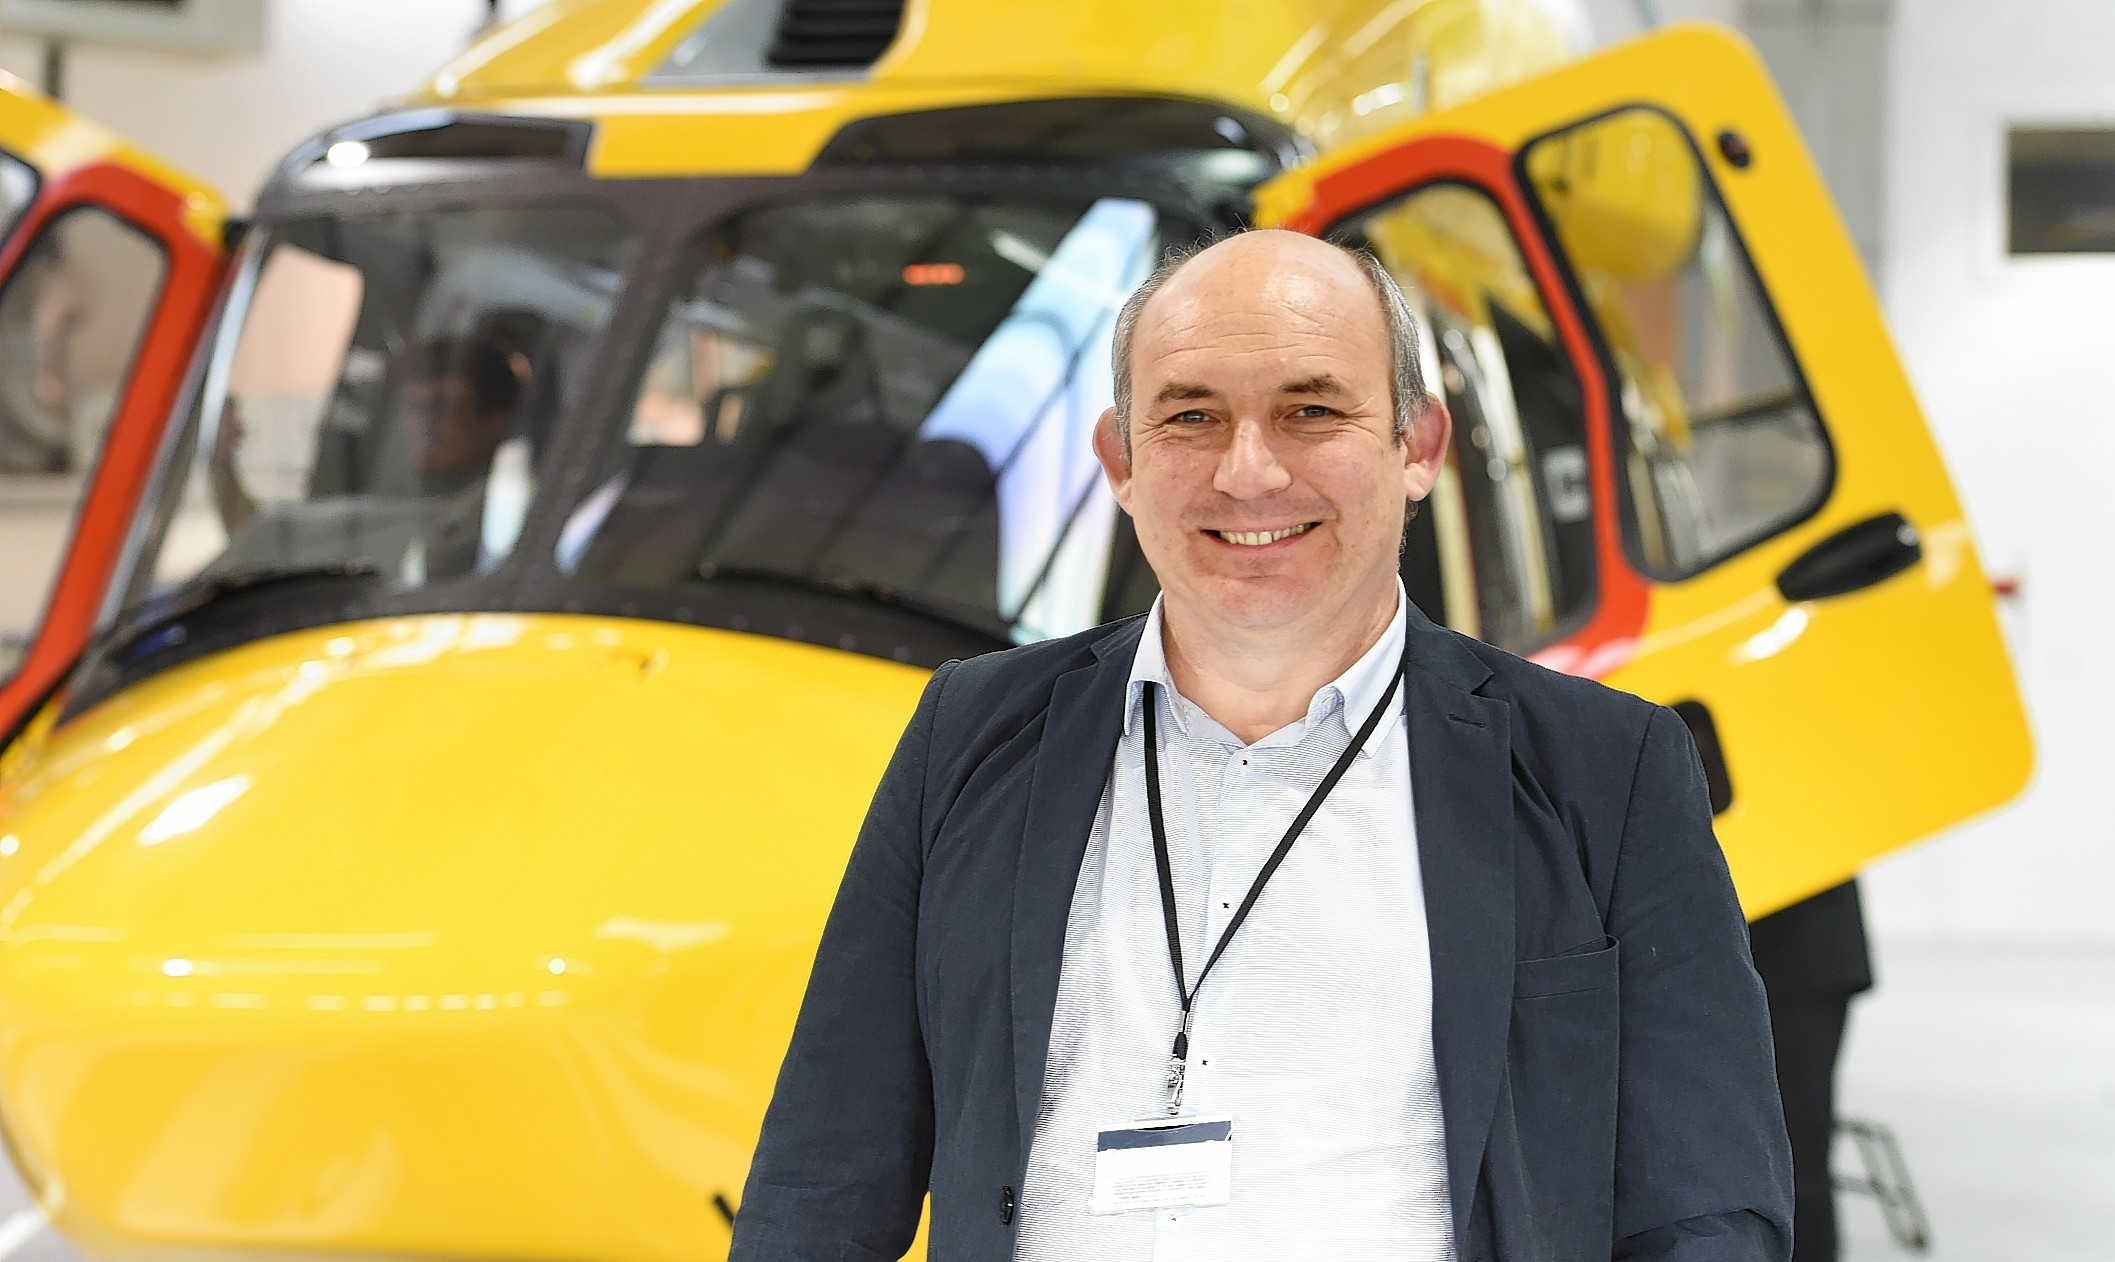 Eric Van Hal, chief executive and co-founder of NHV